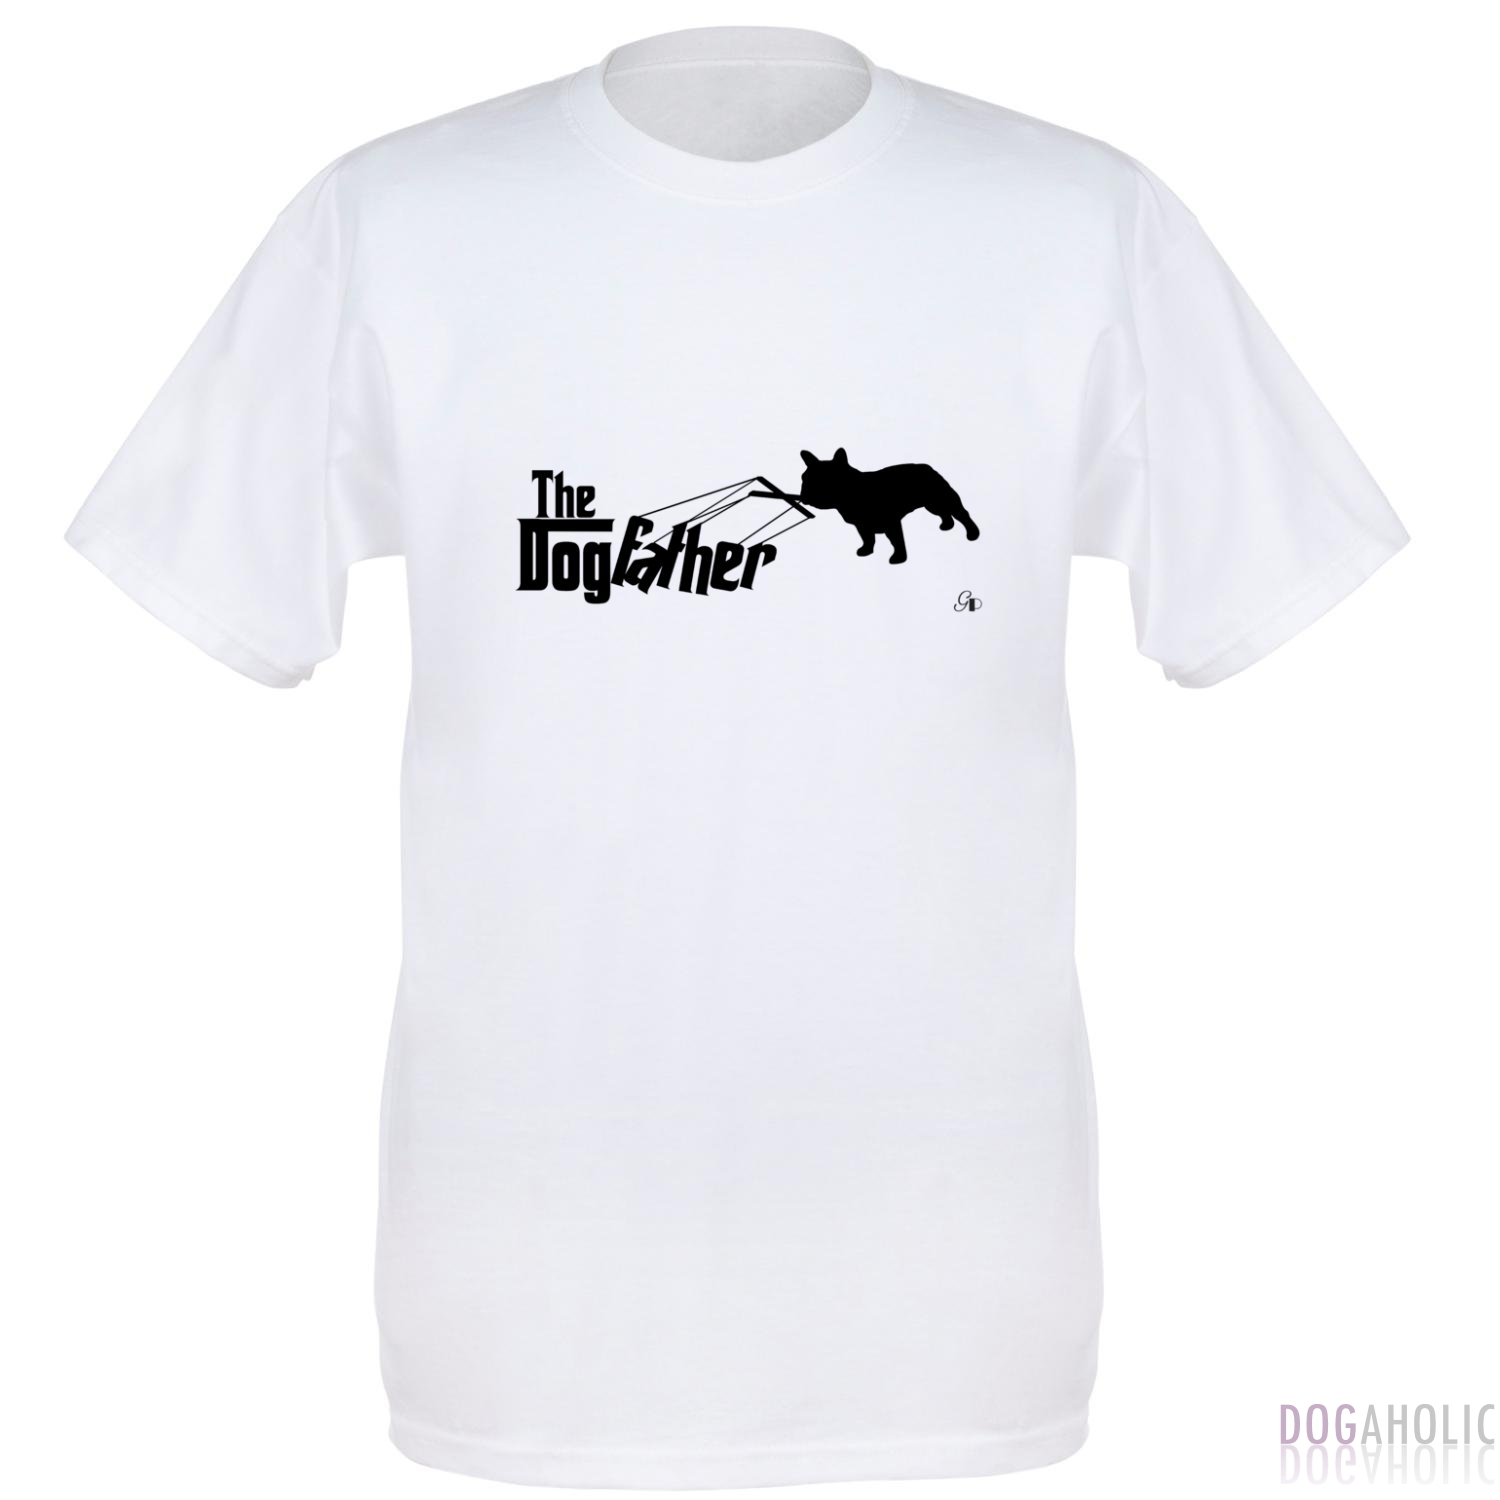 DogFather Men's T-Shirt in White